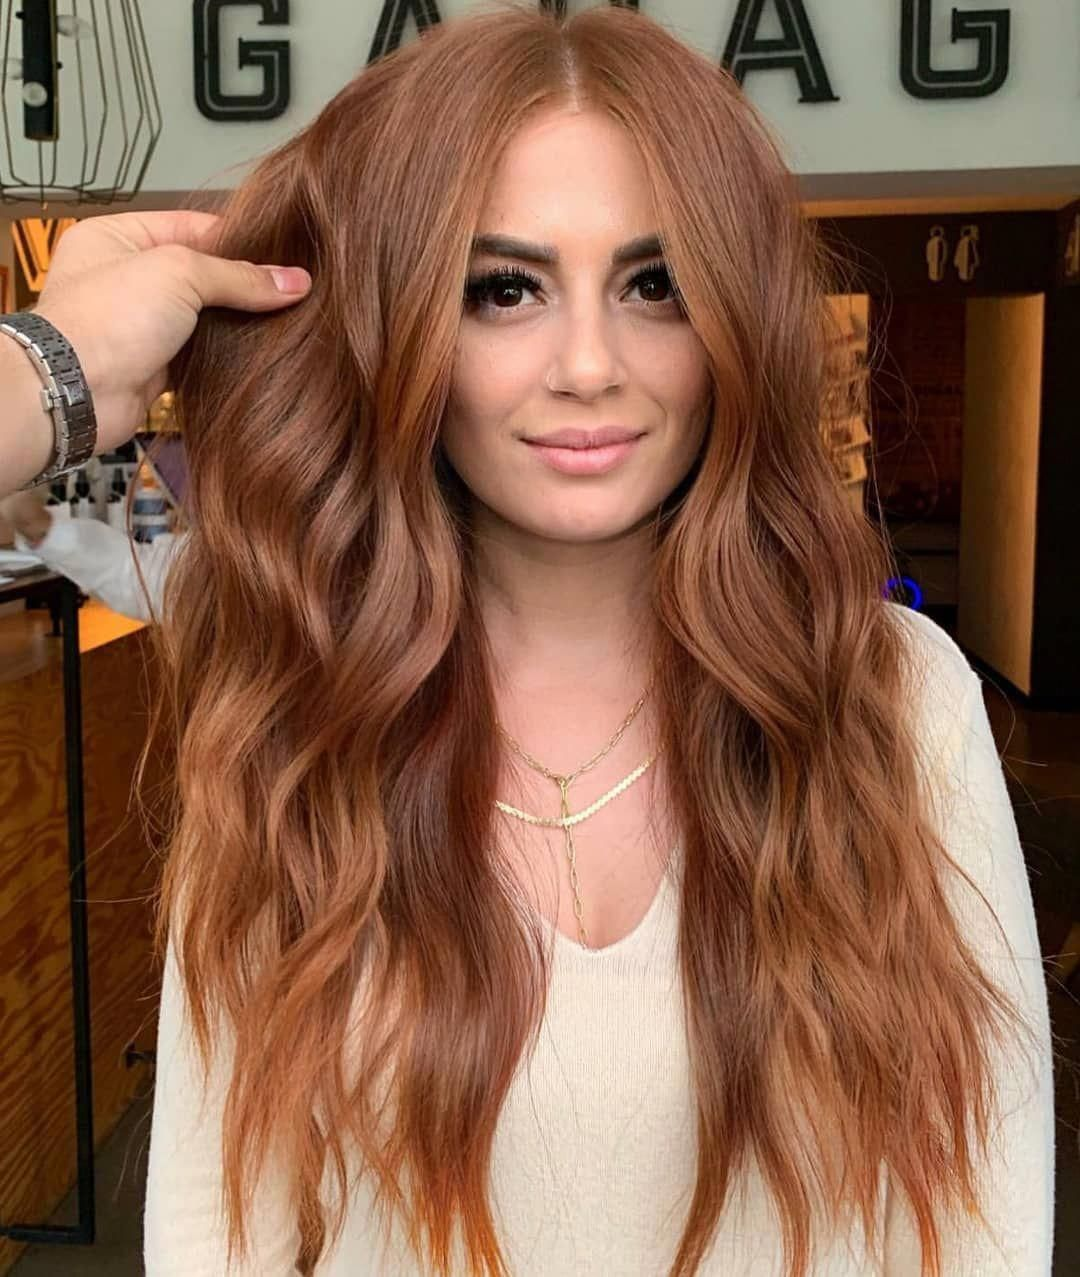 28 Superb Loreal Hair Color Light Brown In 2020 Long Hair Styles Front Hair Styles Foam Hair Color